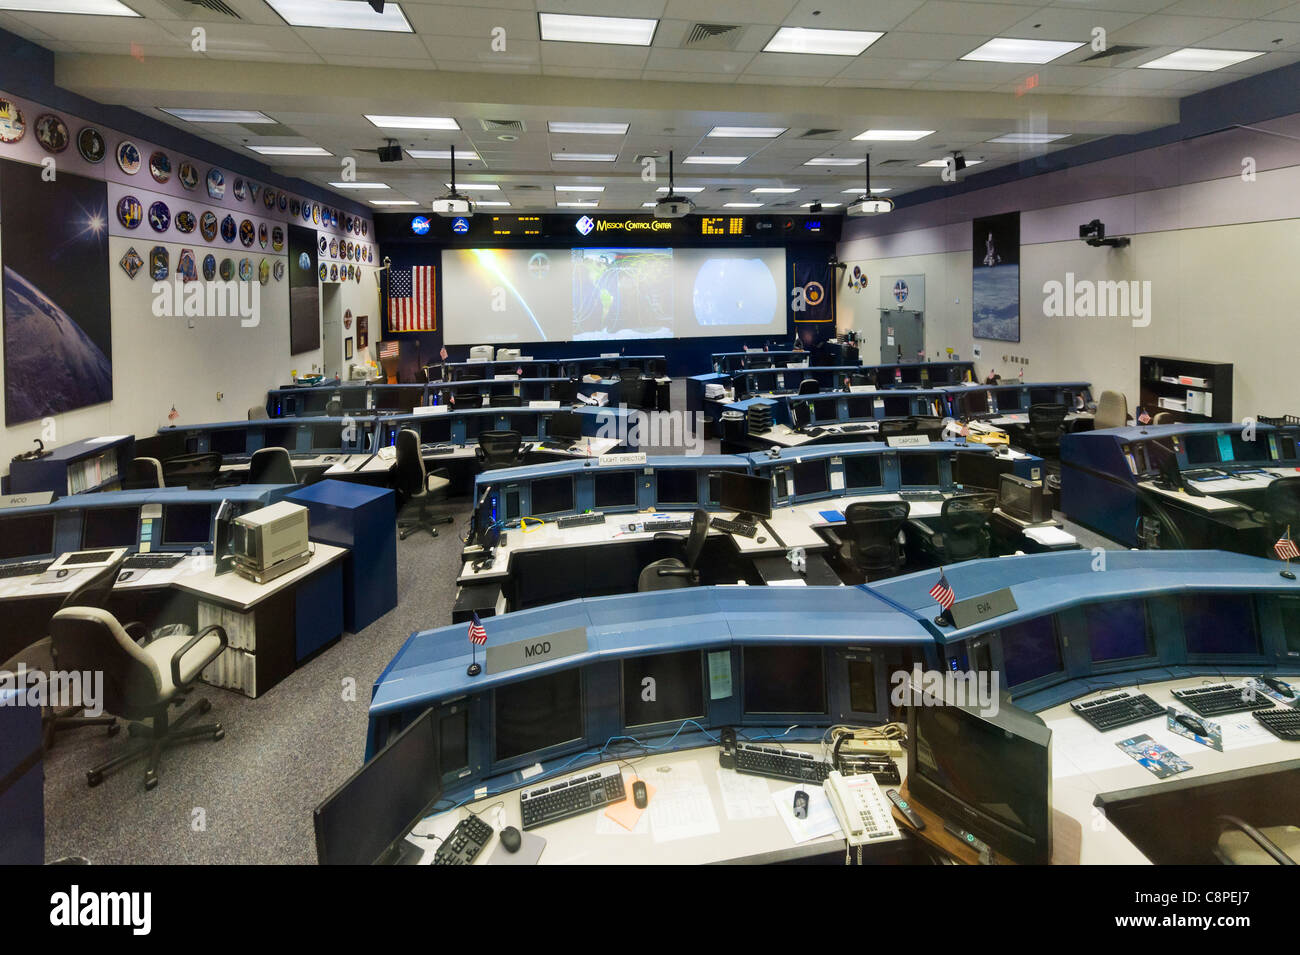 Mission Control Center at the Johnson Space Center, Houston, Texas, USA - Stock Image